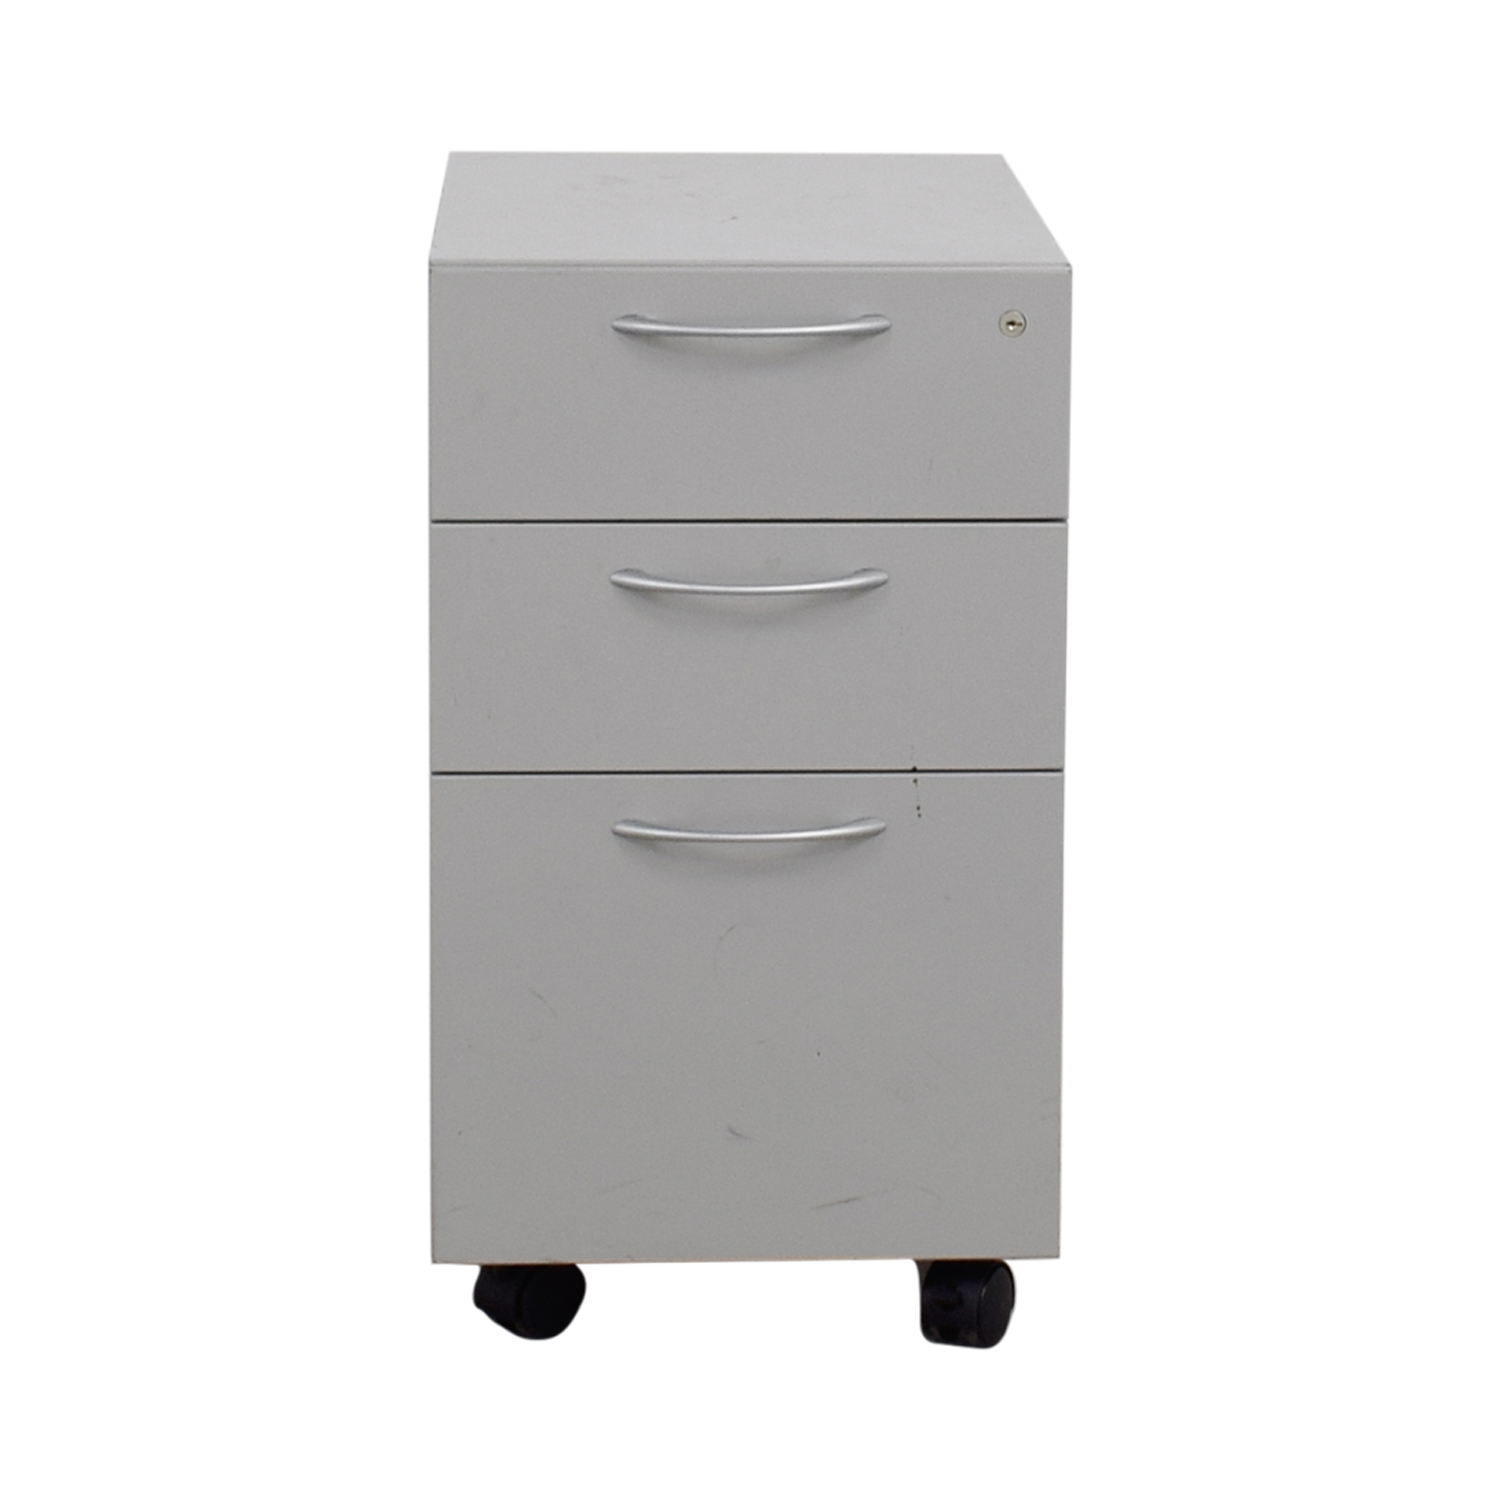 Allsteel Light Grey Two-Drawer Cabinet on Casters / Filing & Bins